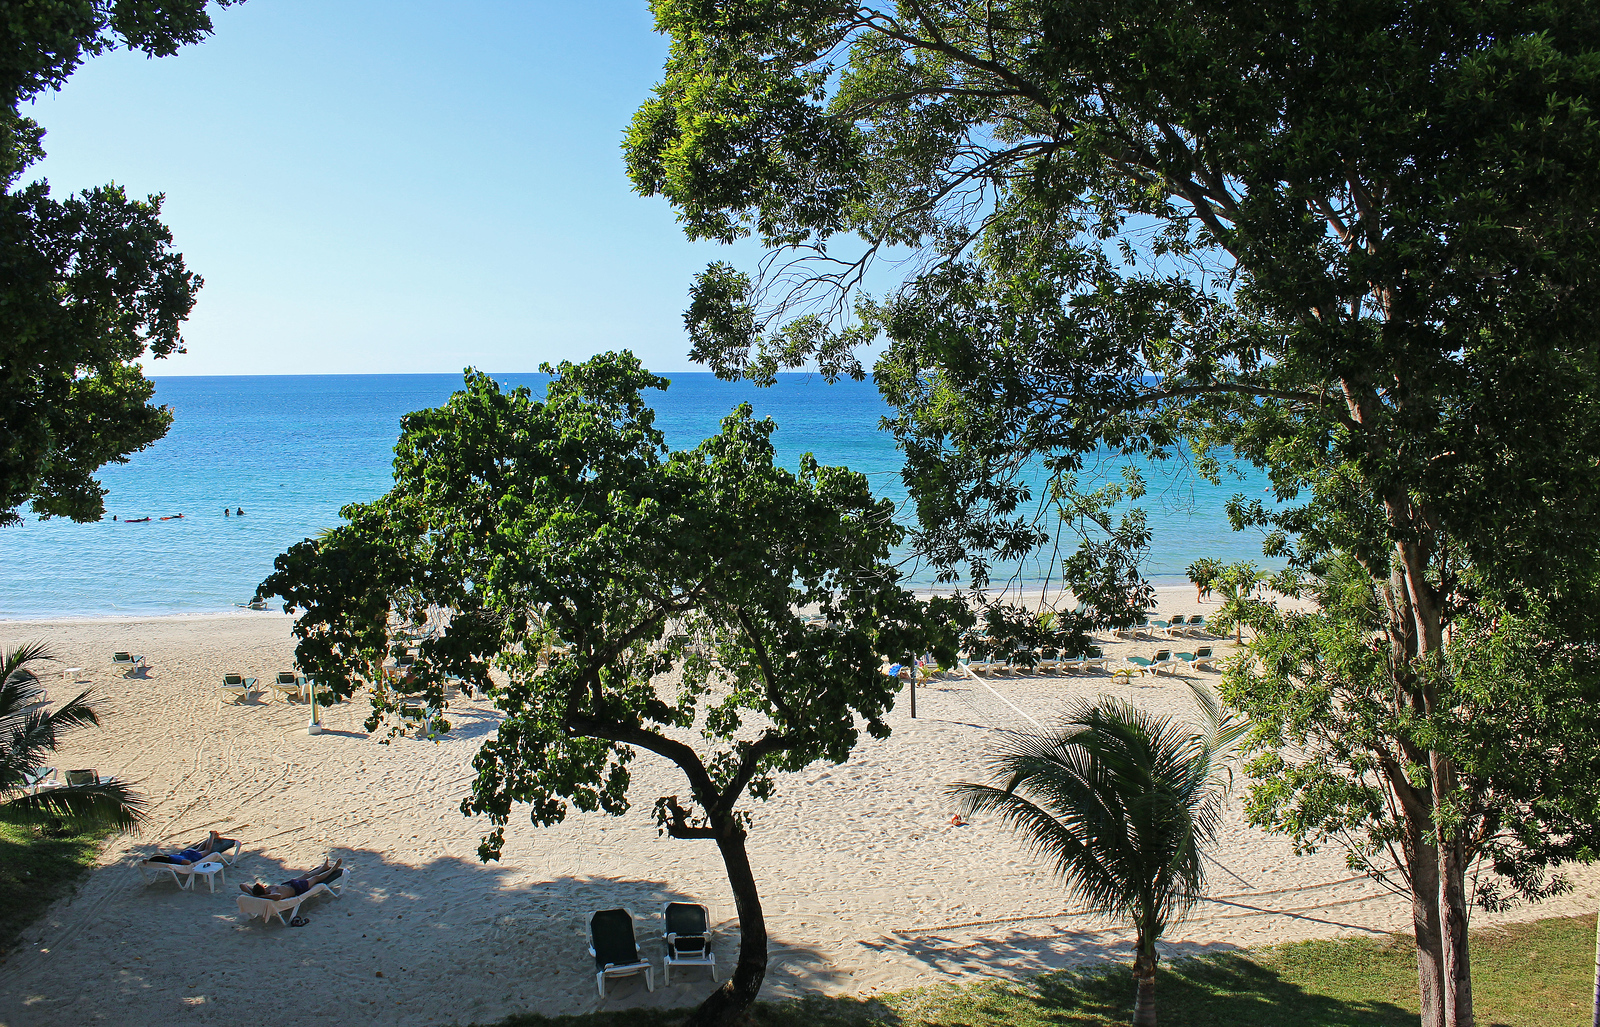 Hotel Review - Riu Palace Tropical Bay - View from the balcony to Bloody Bay Jamaica